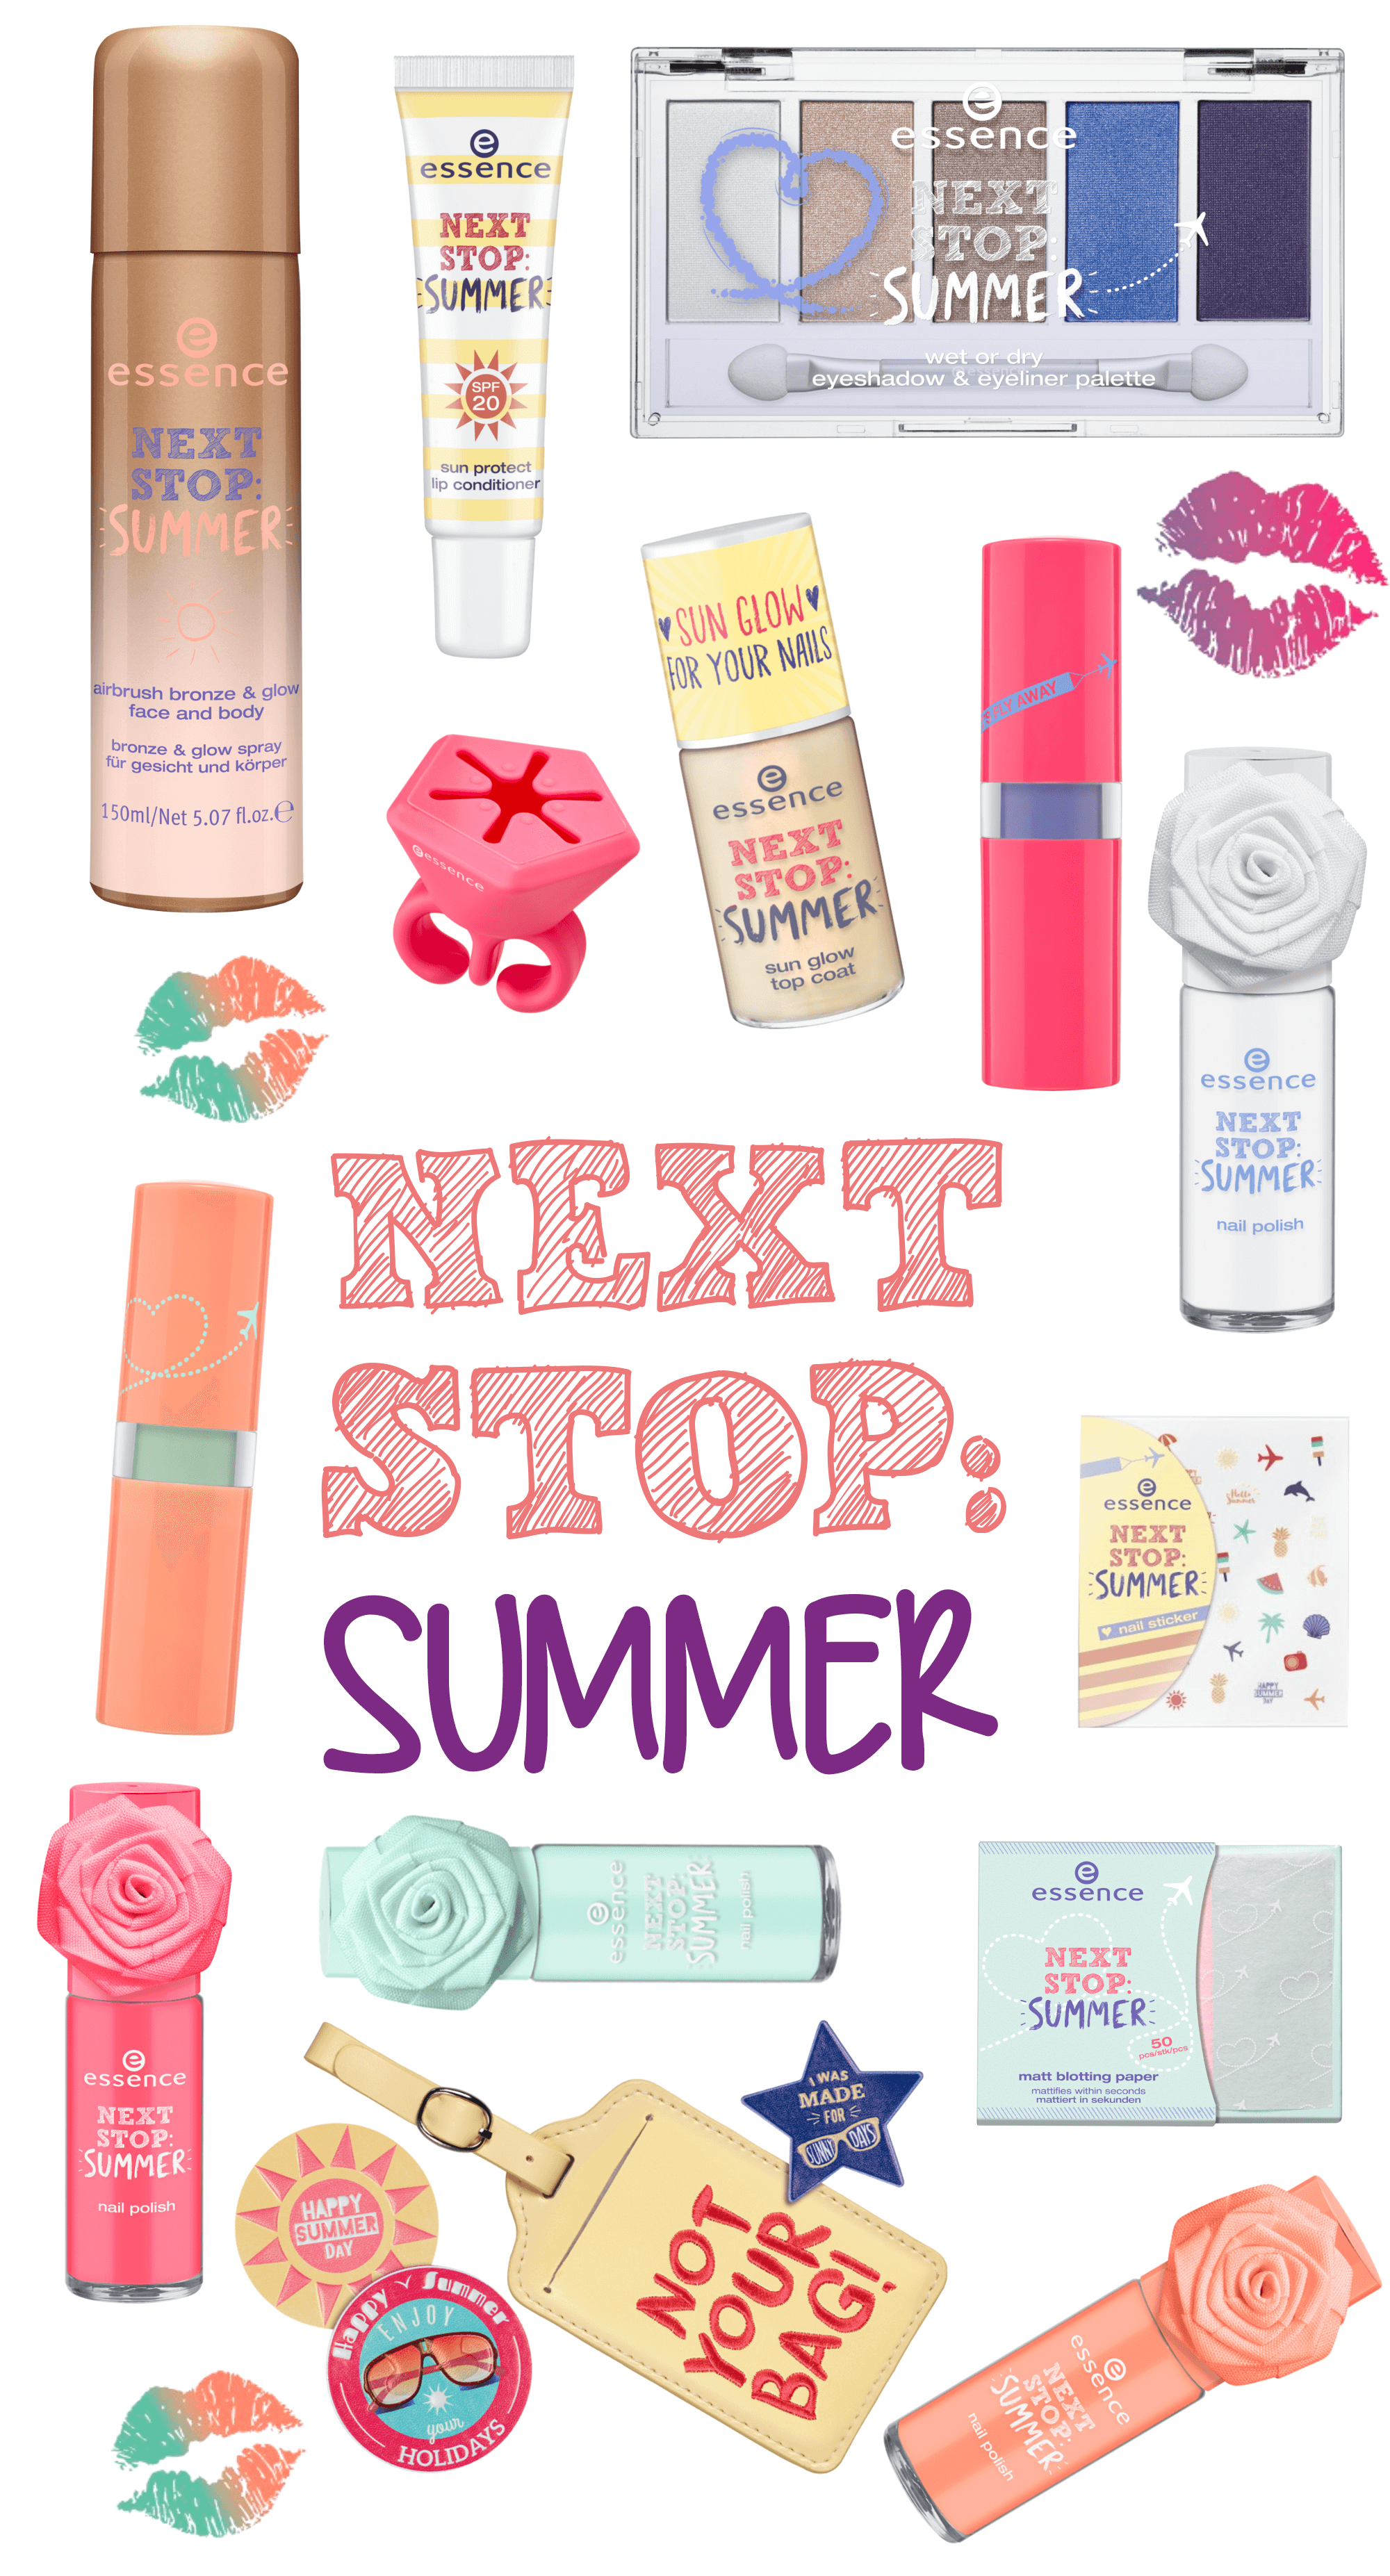 next-stop-summer-trend-edition-pinterest-tantdine